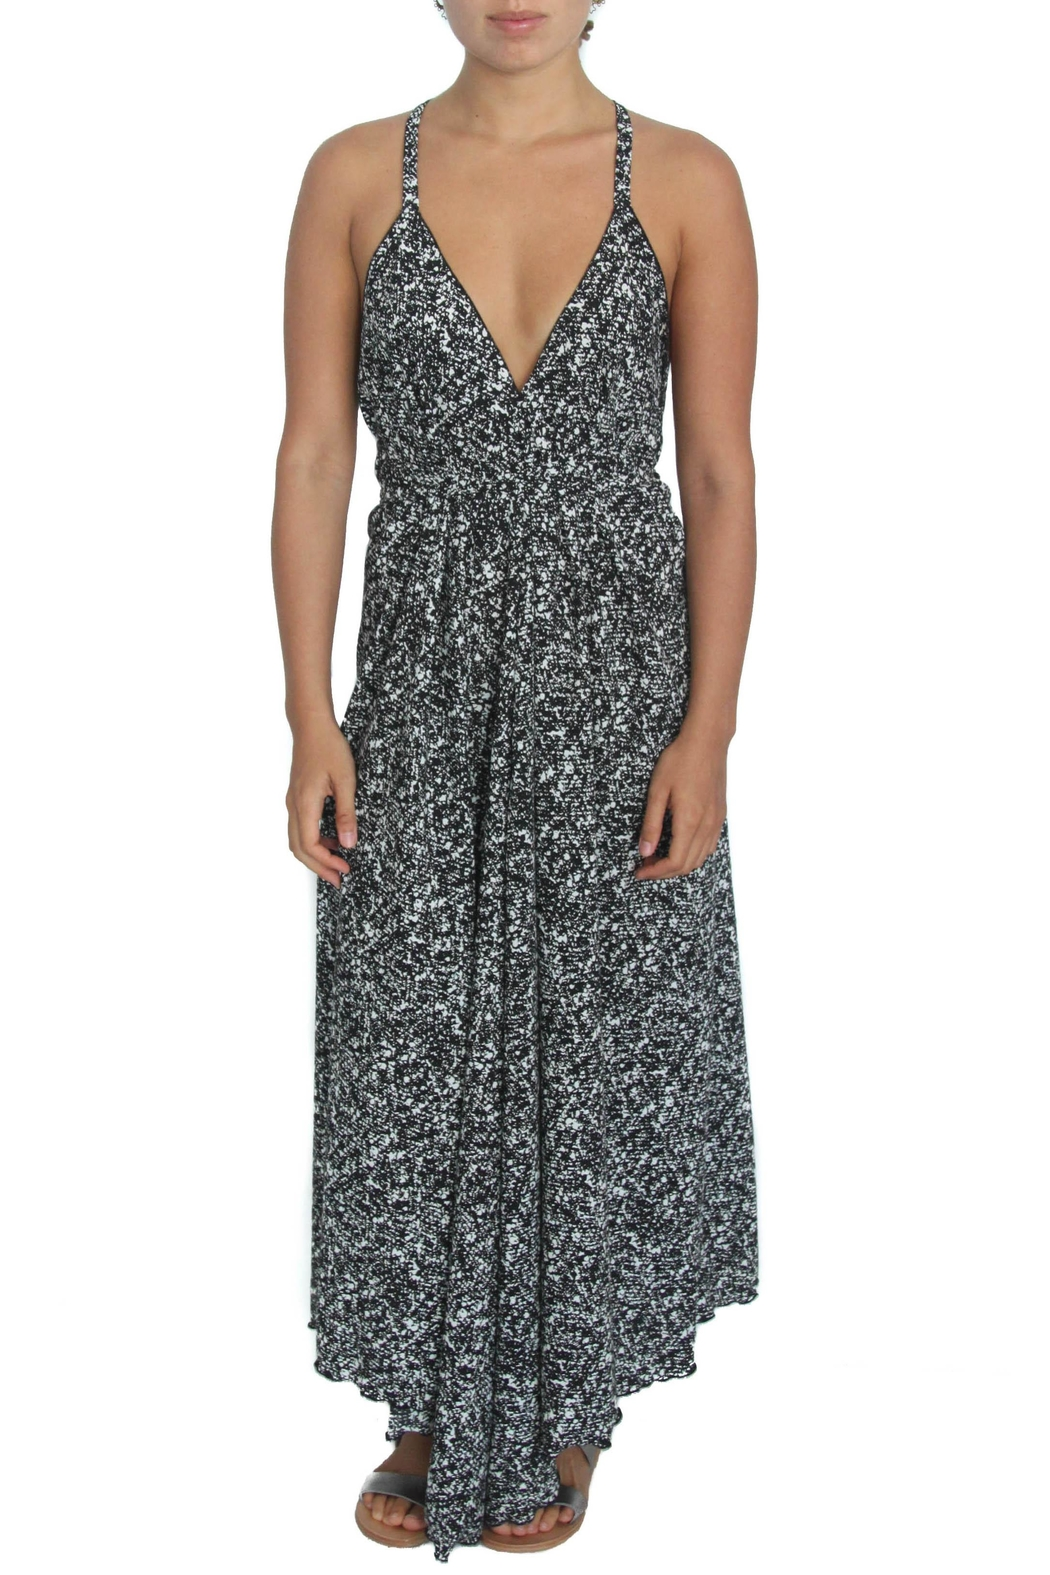 Loveleigh Noosa Maxi Black From Mexico By Eclectic Array Shoptiques